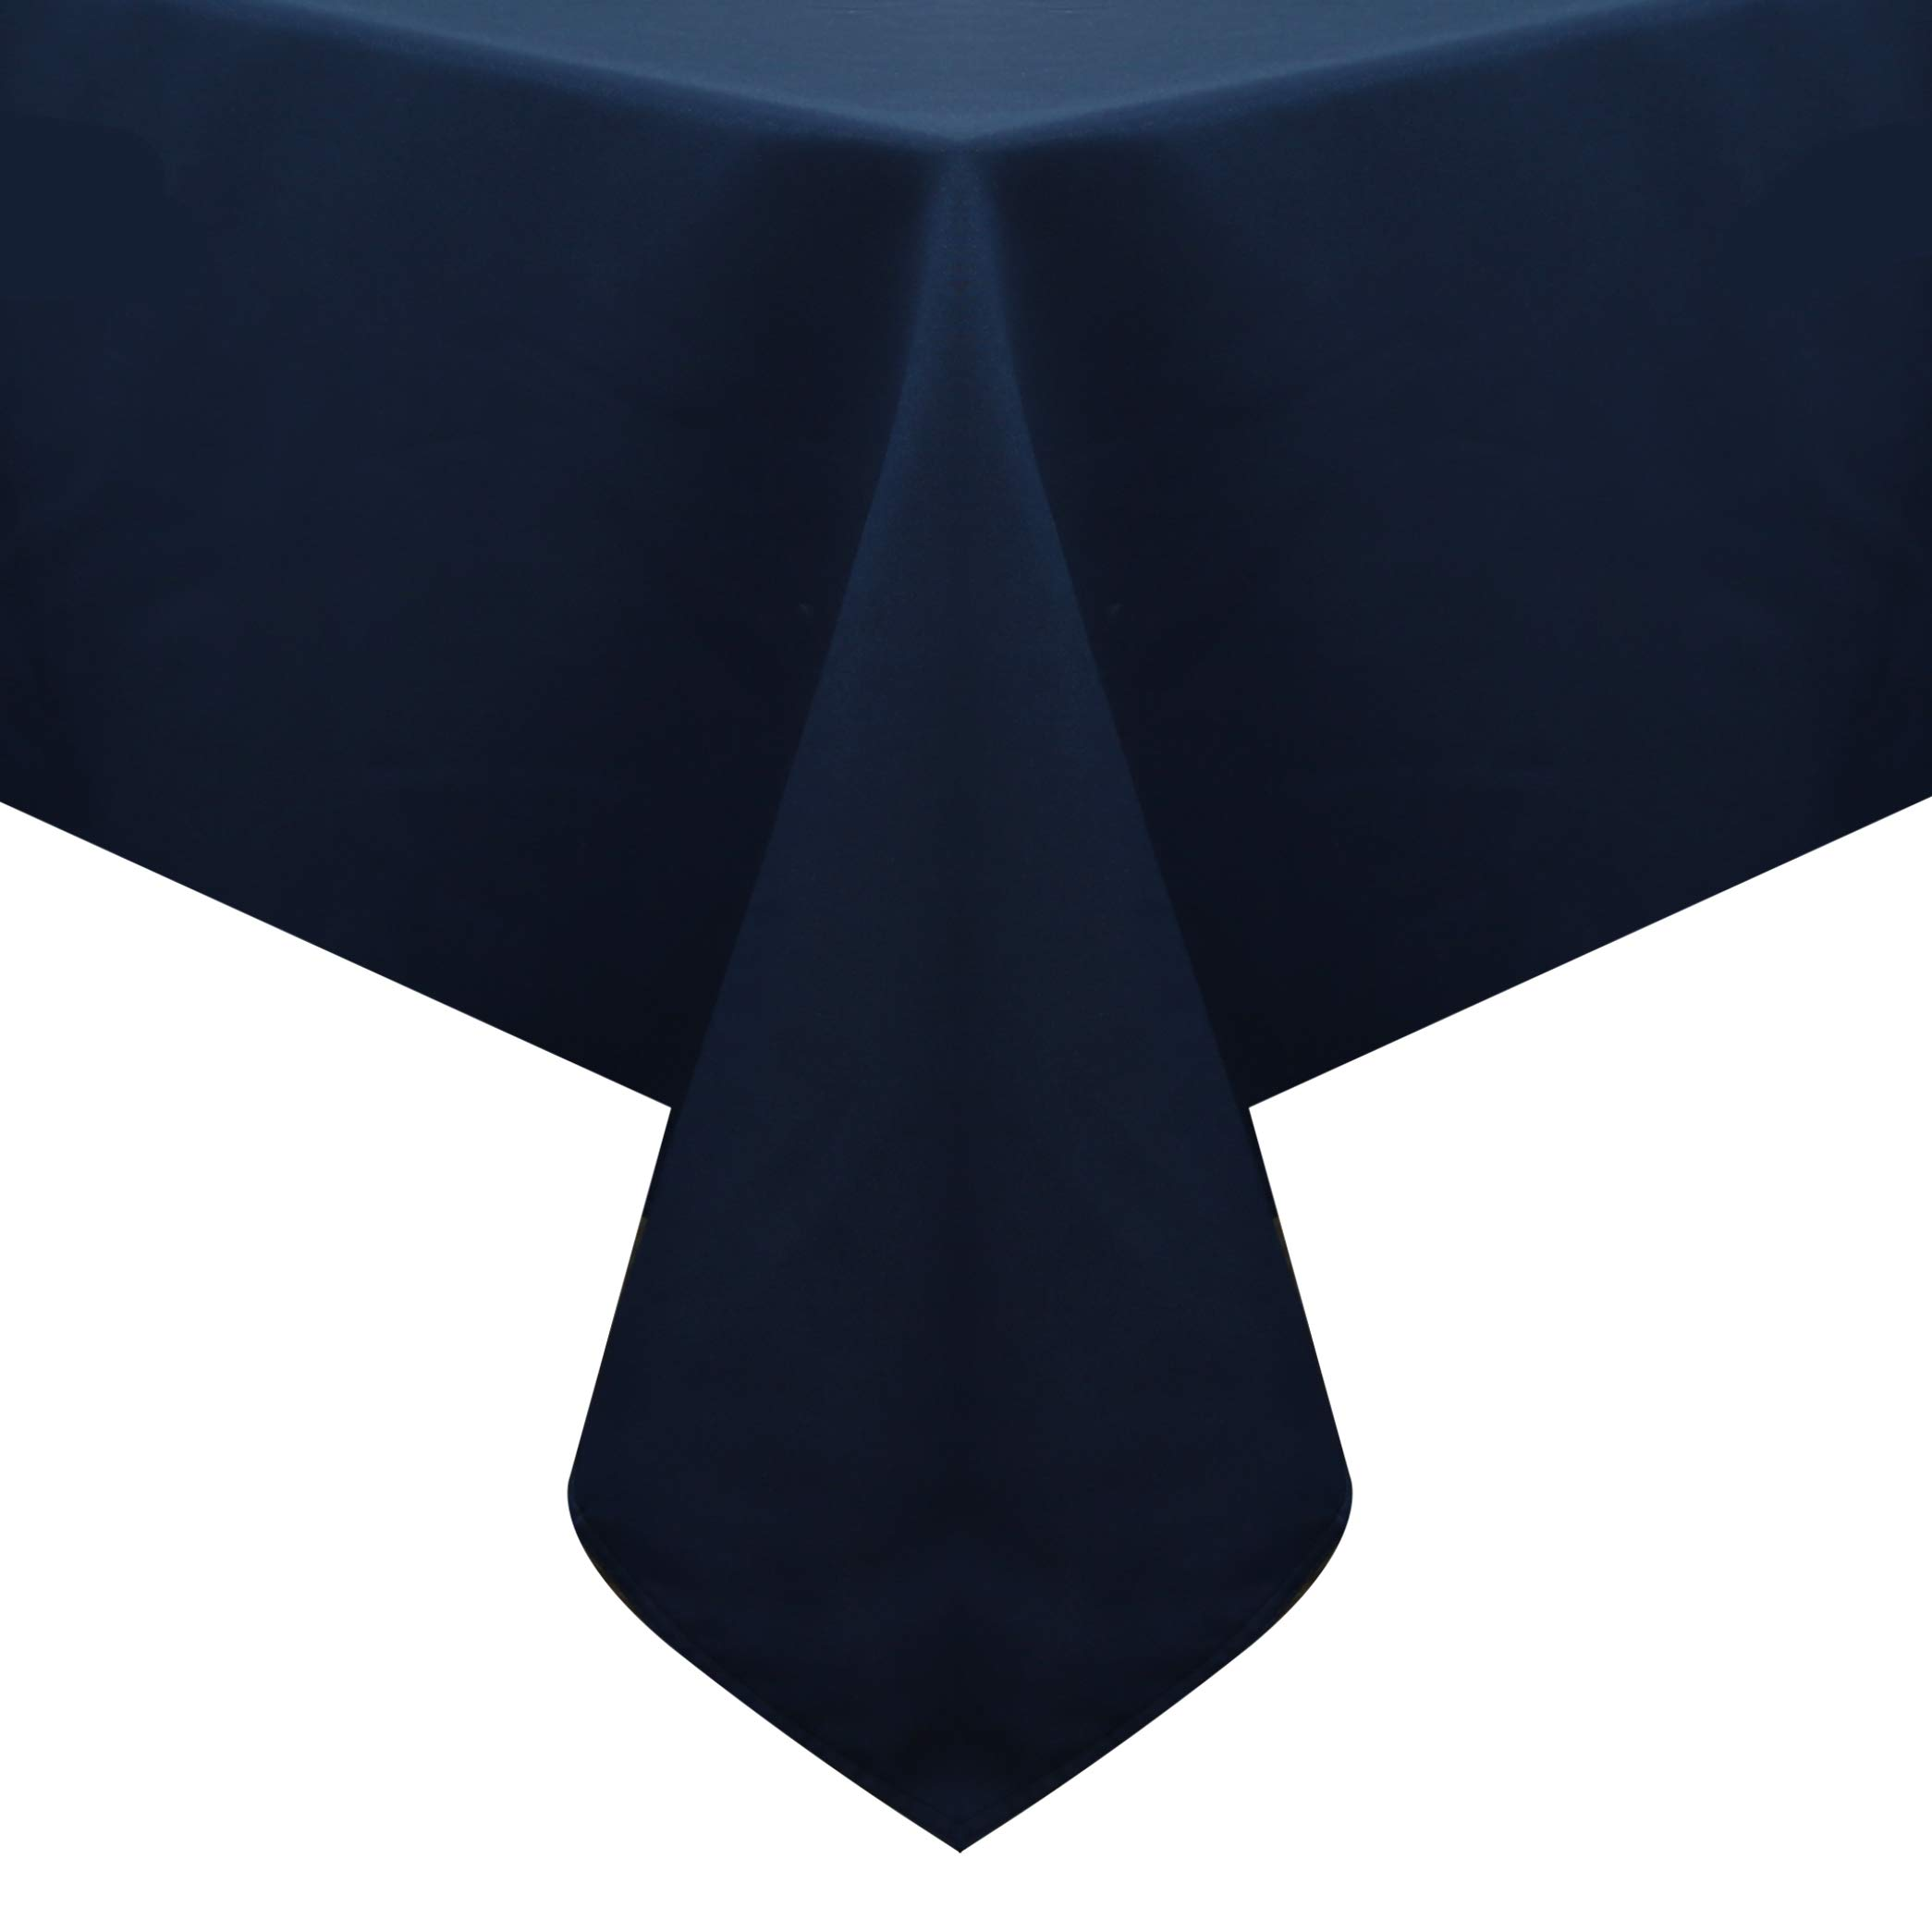 Obstal Rectangle Table Cloth, Oil-Proof Spill-Proof and Water Resistance Microfiber Tablecloth, Decorative Fabric Table Cover for Outdoor and Indoor Use (Navy Blue, 60 x 84 Inch) by Obstal (Image #2)